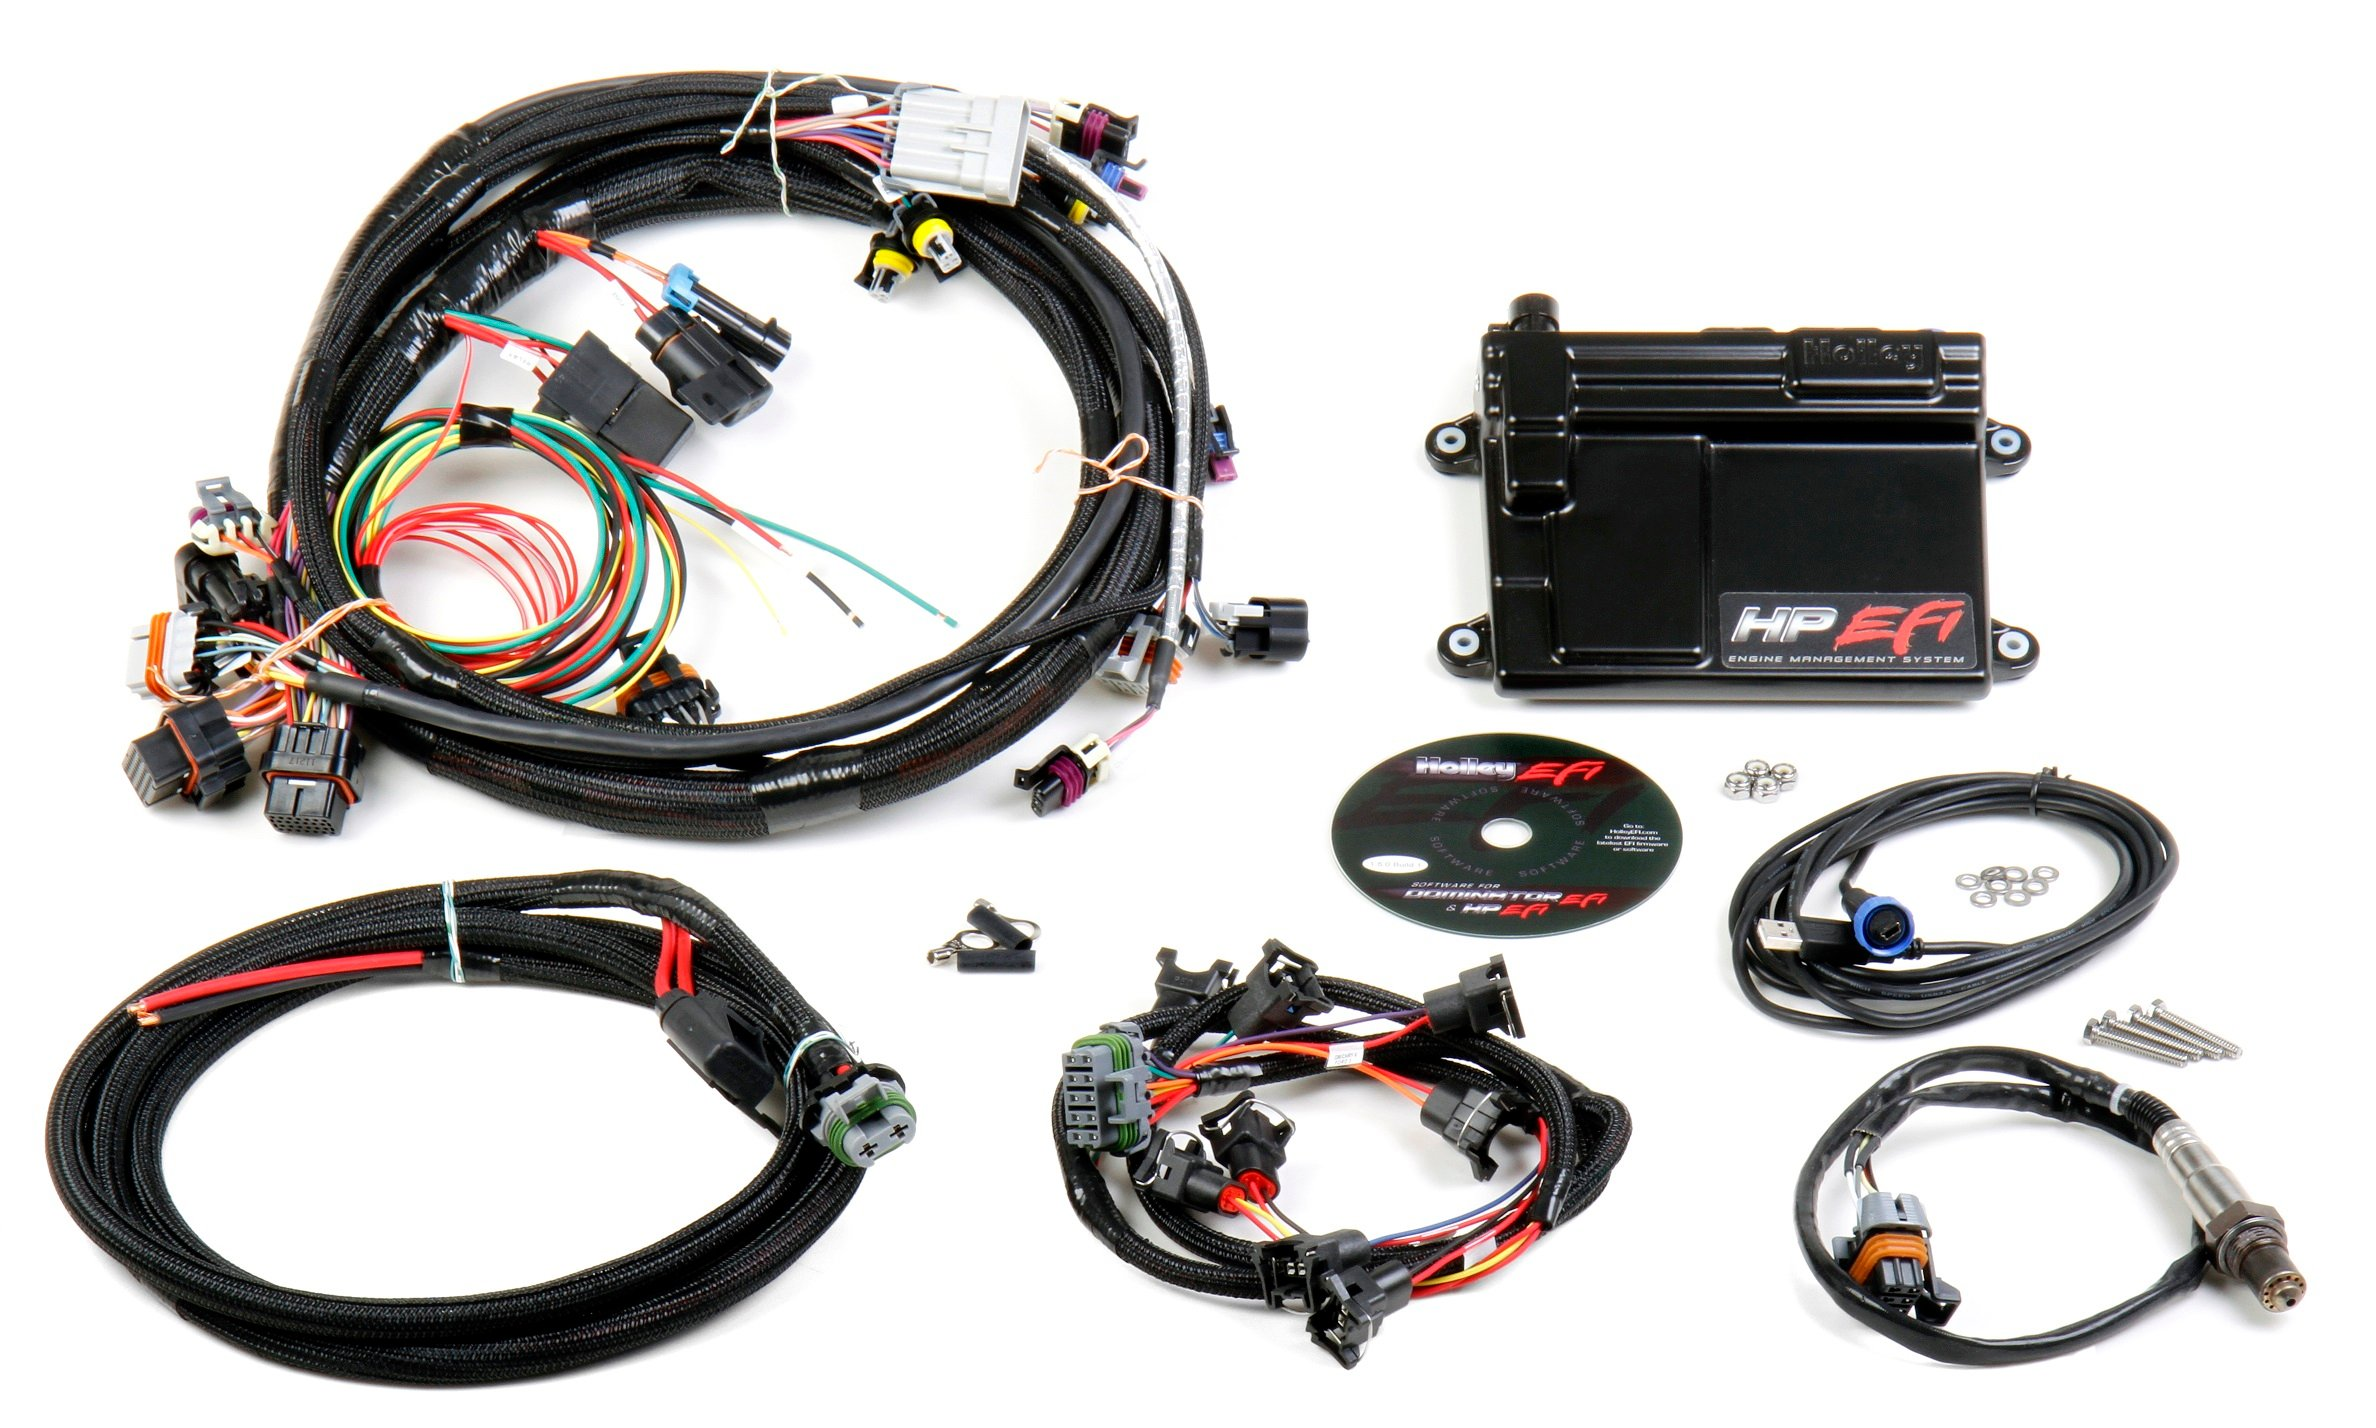 550 602 holley efi 550 602 hp efi ecu & harness kits 240z ls1 wiring harness at gsmx.co